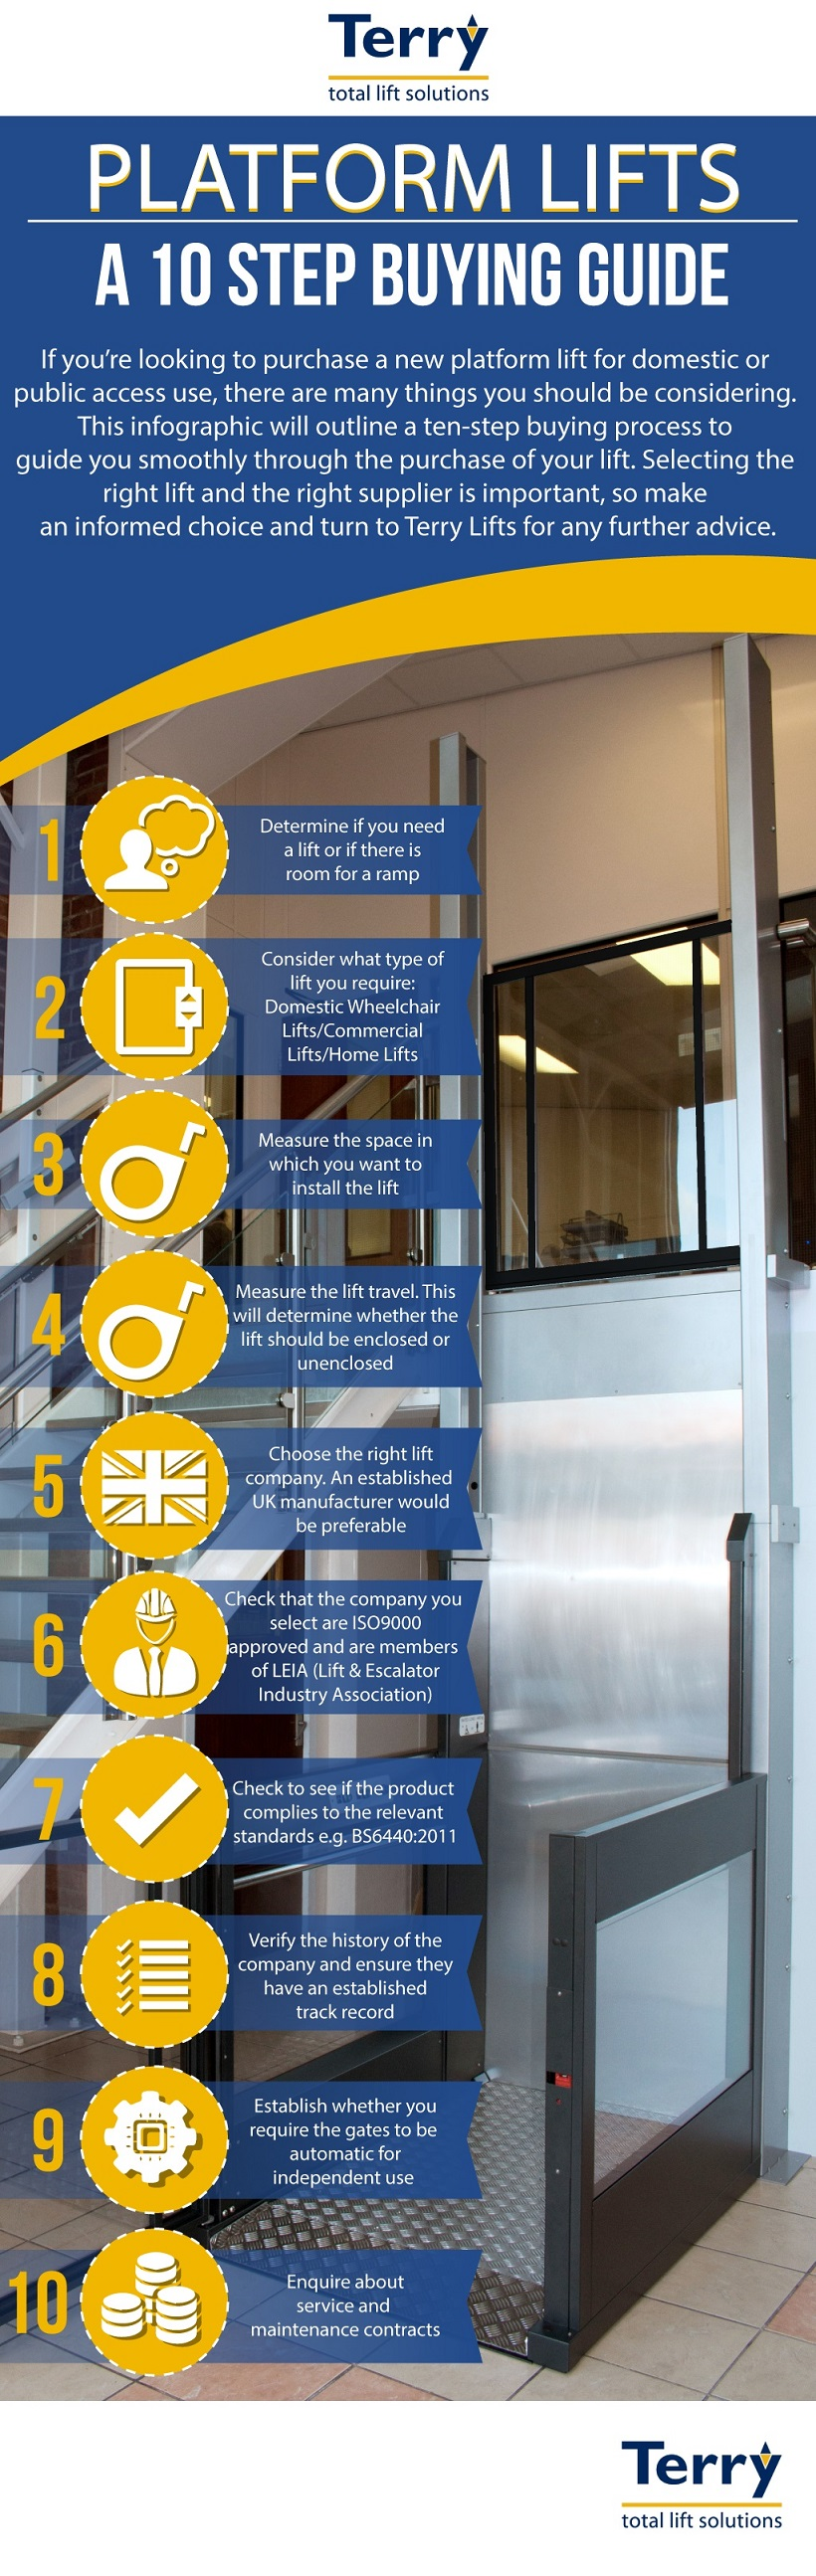 Platform Lifts – A 10 Step Buying Guide infographic